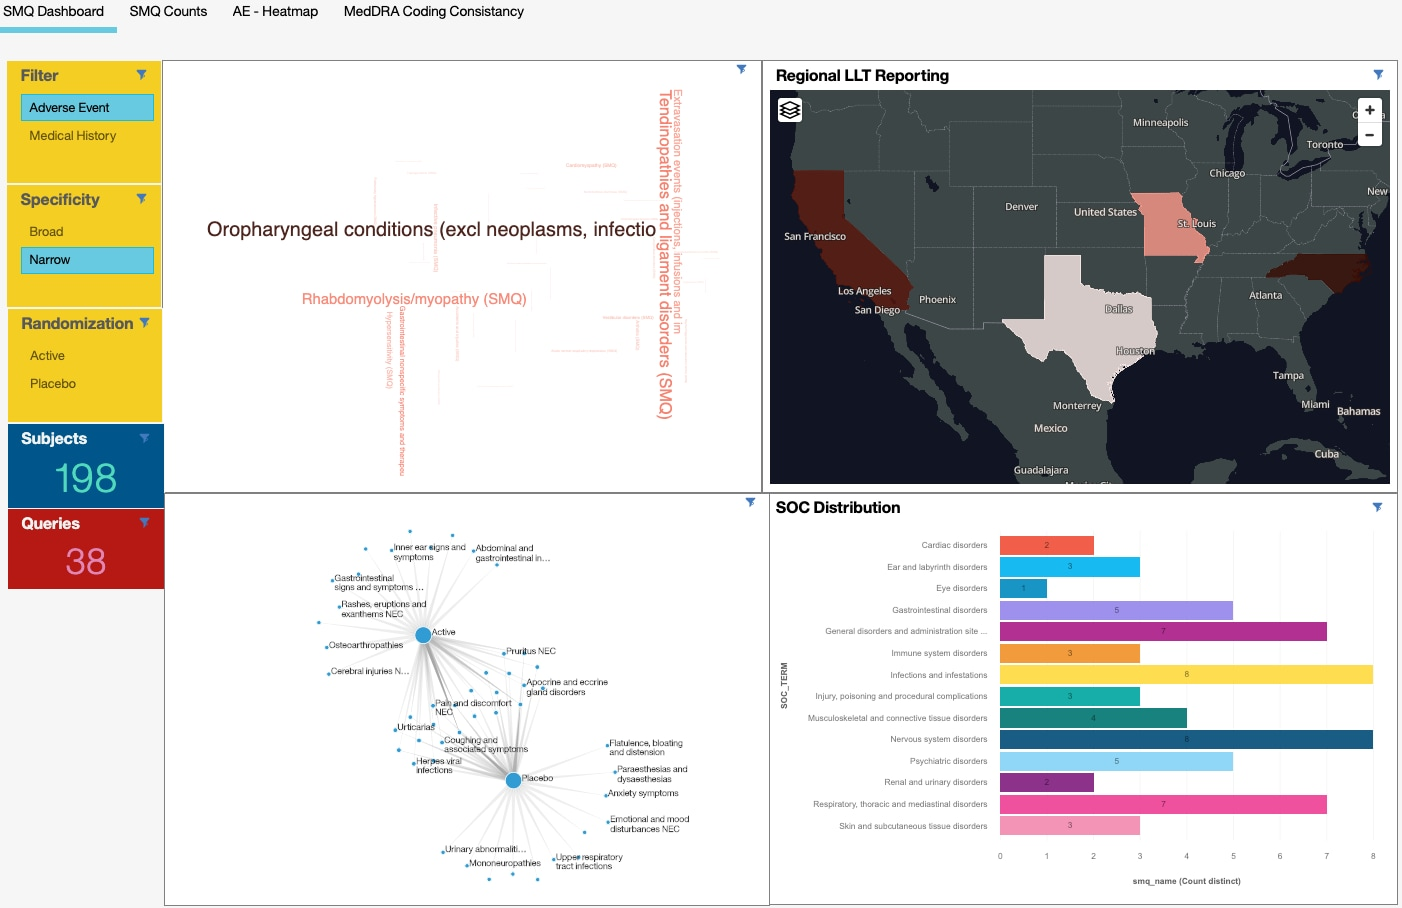 Dynamic and configurable analytics powered by Cognos